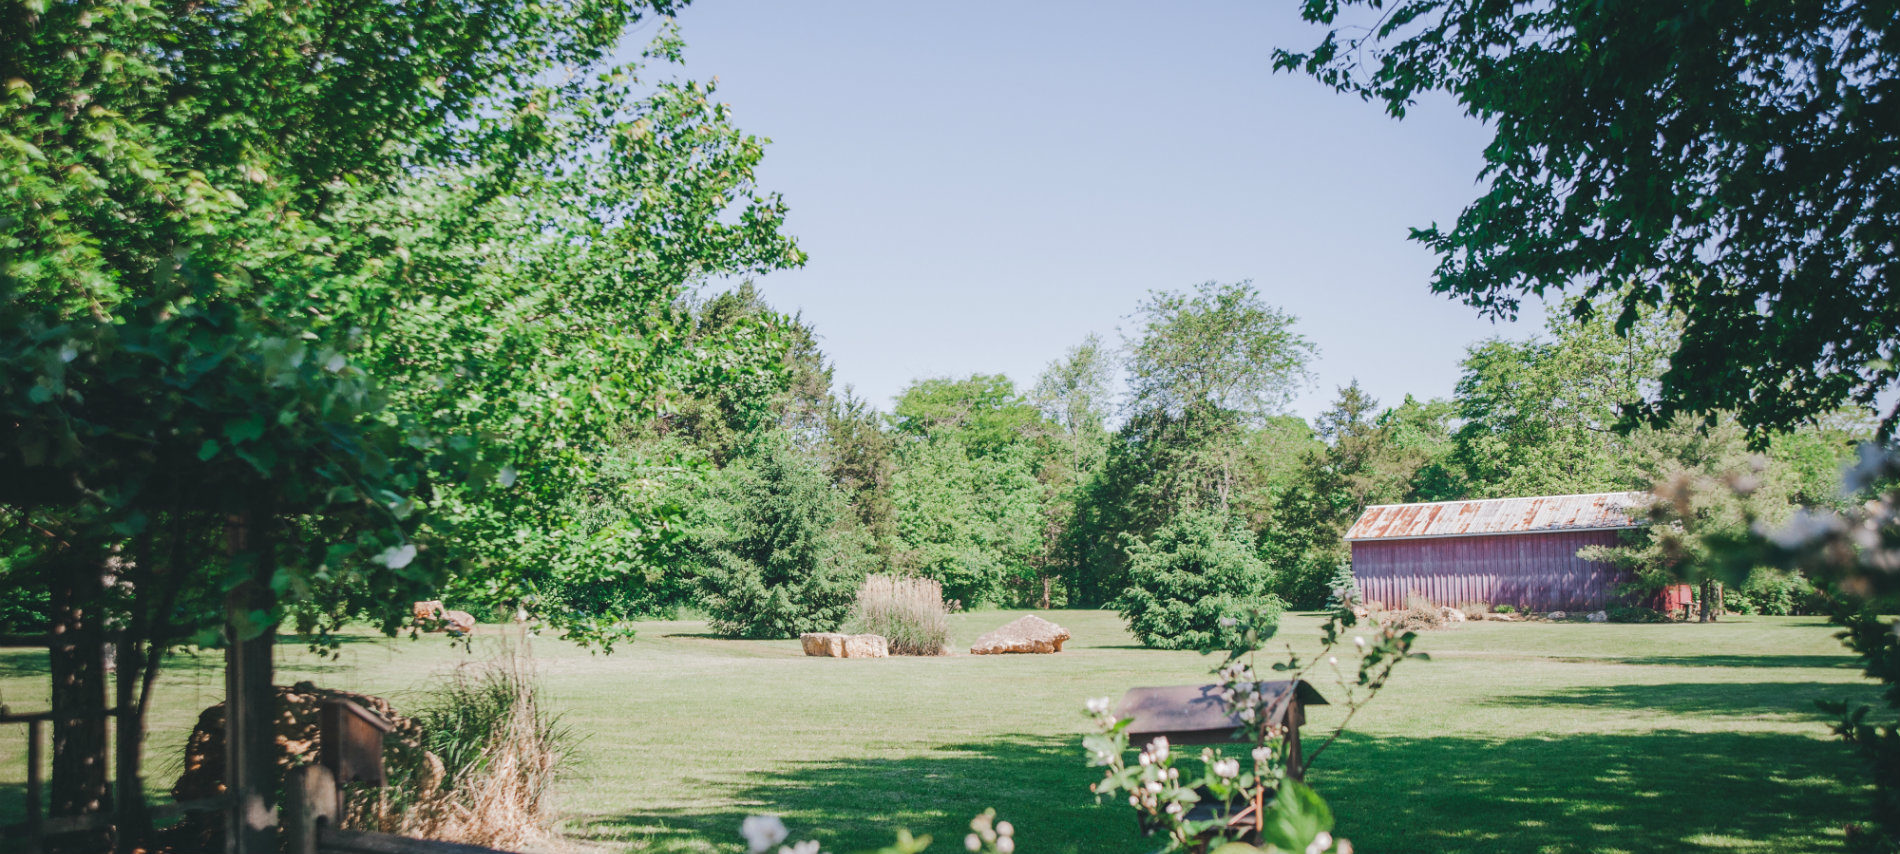 The large backyard of the OCBB with trees and red barn